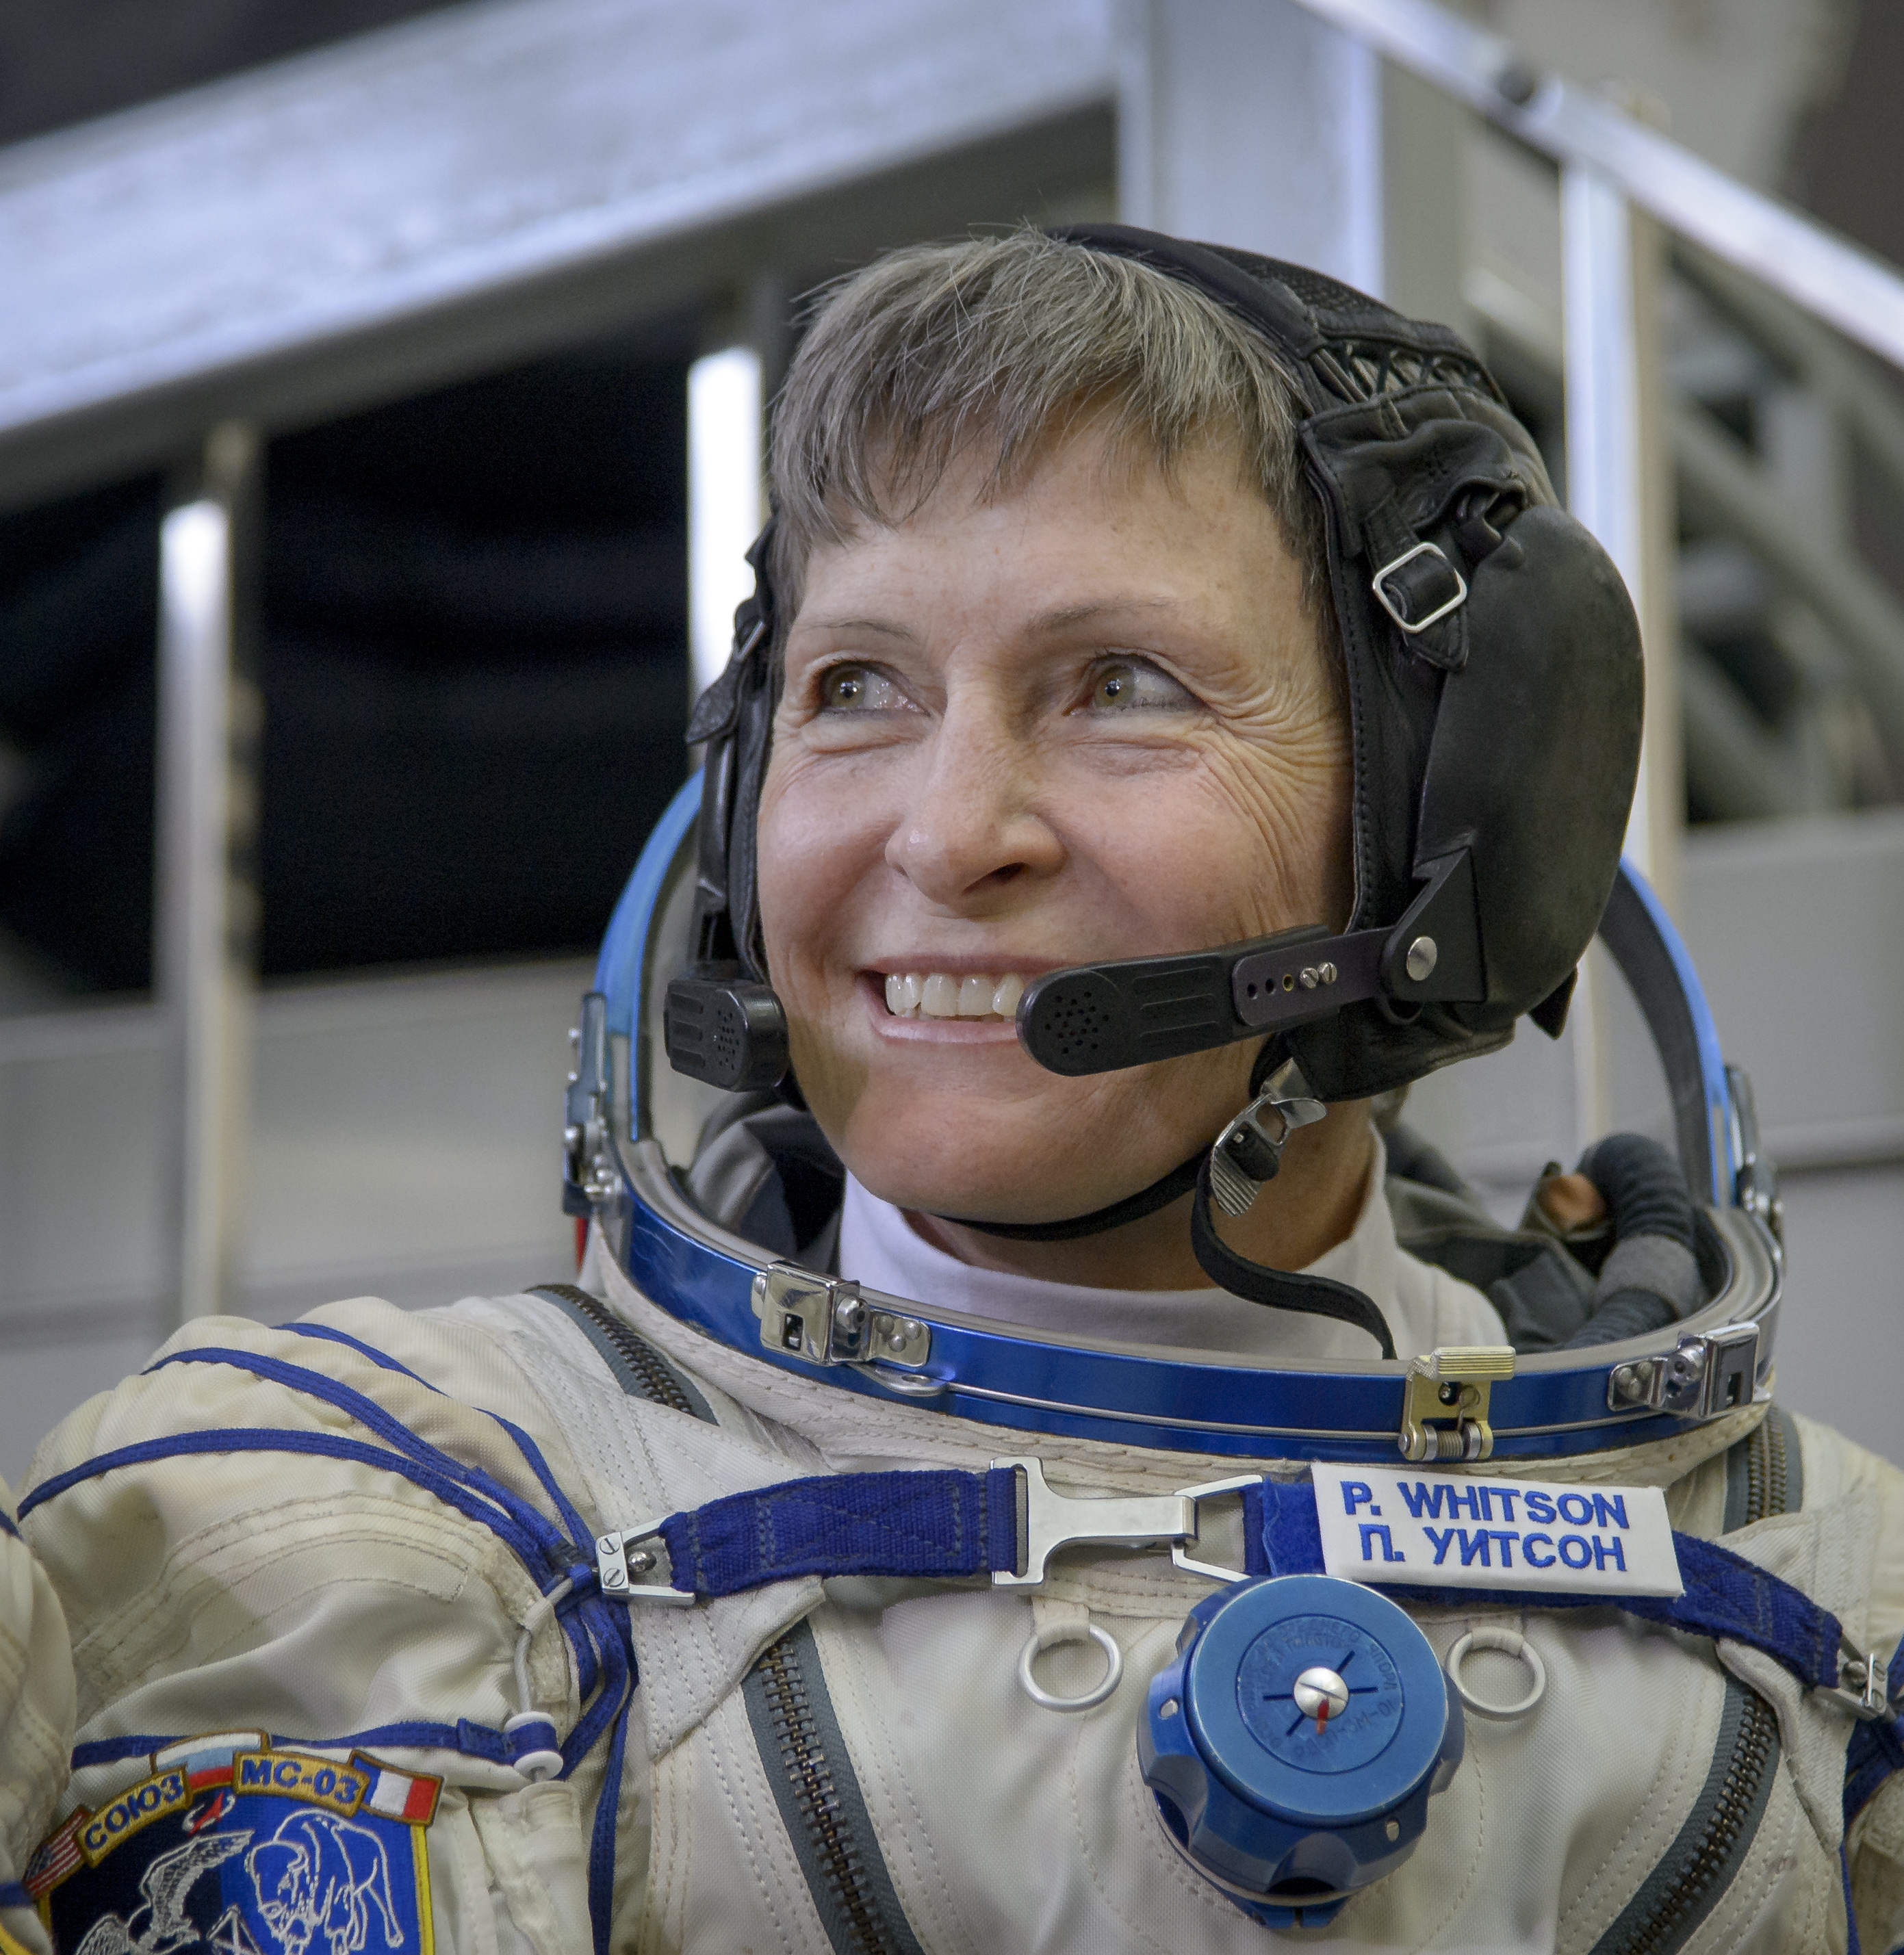 In this handout provided by NASA, Expedition 50 NASA astronaut Peggy Whitson smiles as she listens to a reporter's question ahead of the final qualification exams with fellow crew mates Russian cosmonaut Oleg Novitskiy of Roscosmos and ESA astronaut Thomas Pesquet, on October 25, 2016 at the Gagarin Cosmonaut Training Center (GCTC) in Star City, Russia.